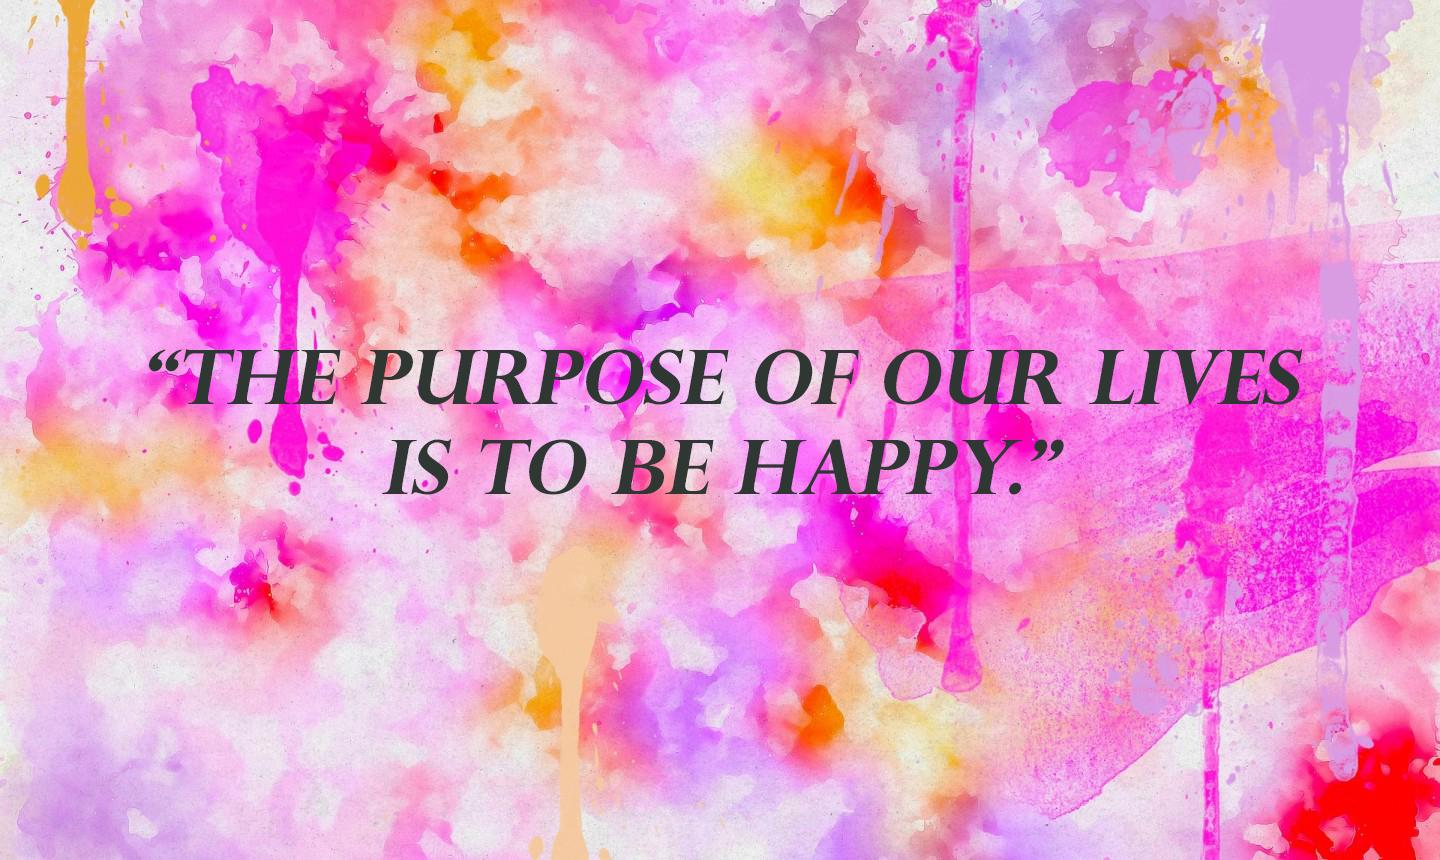 """The purpose of our lives is to be happy."" by Dalai Lama (1440 * 860 mpx)"